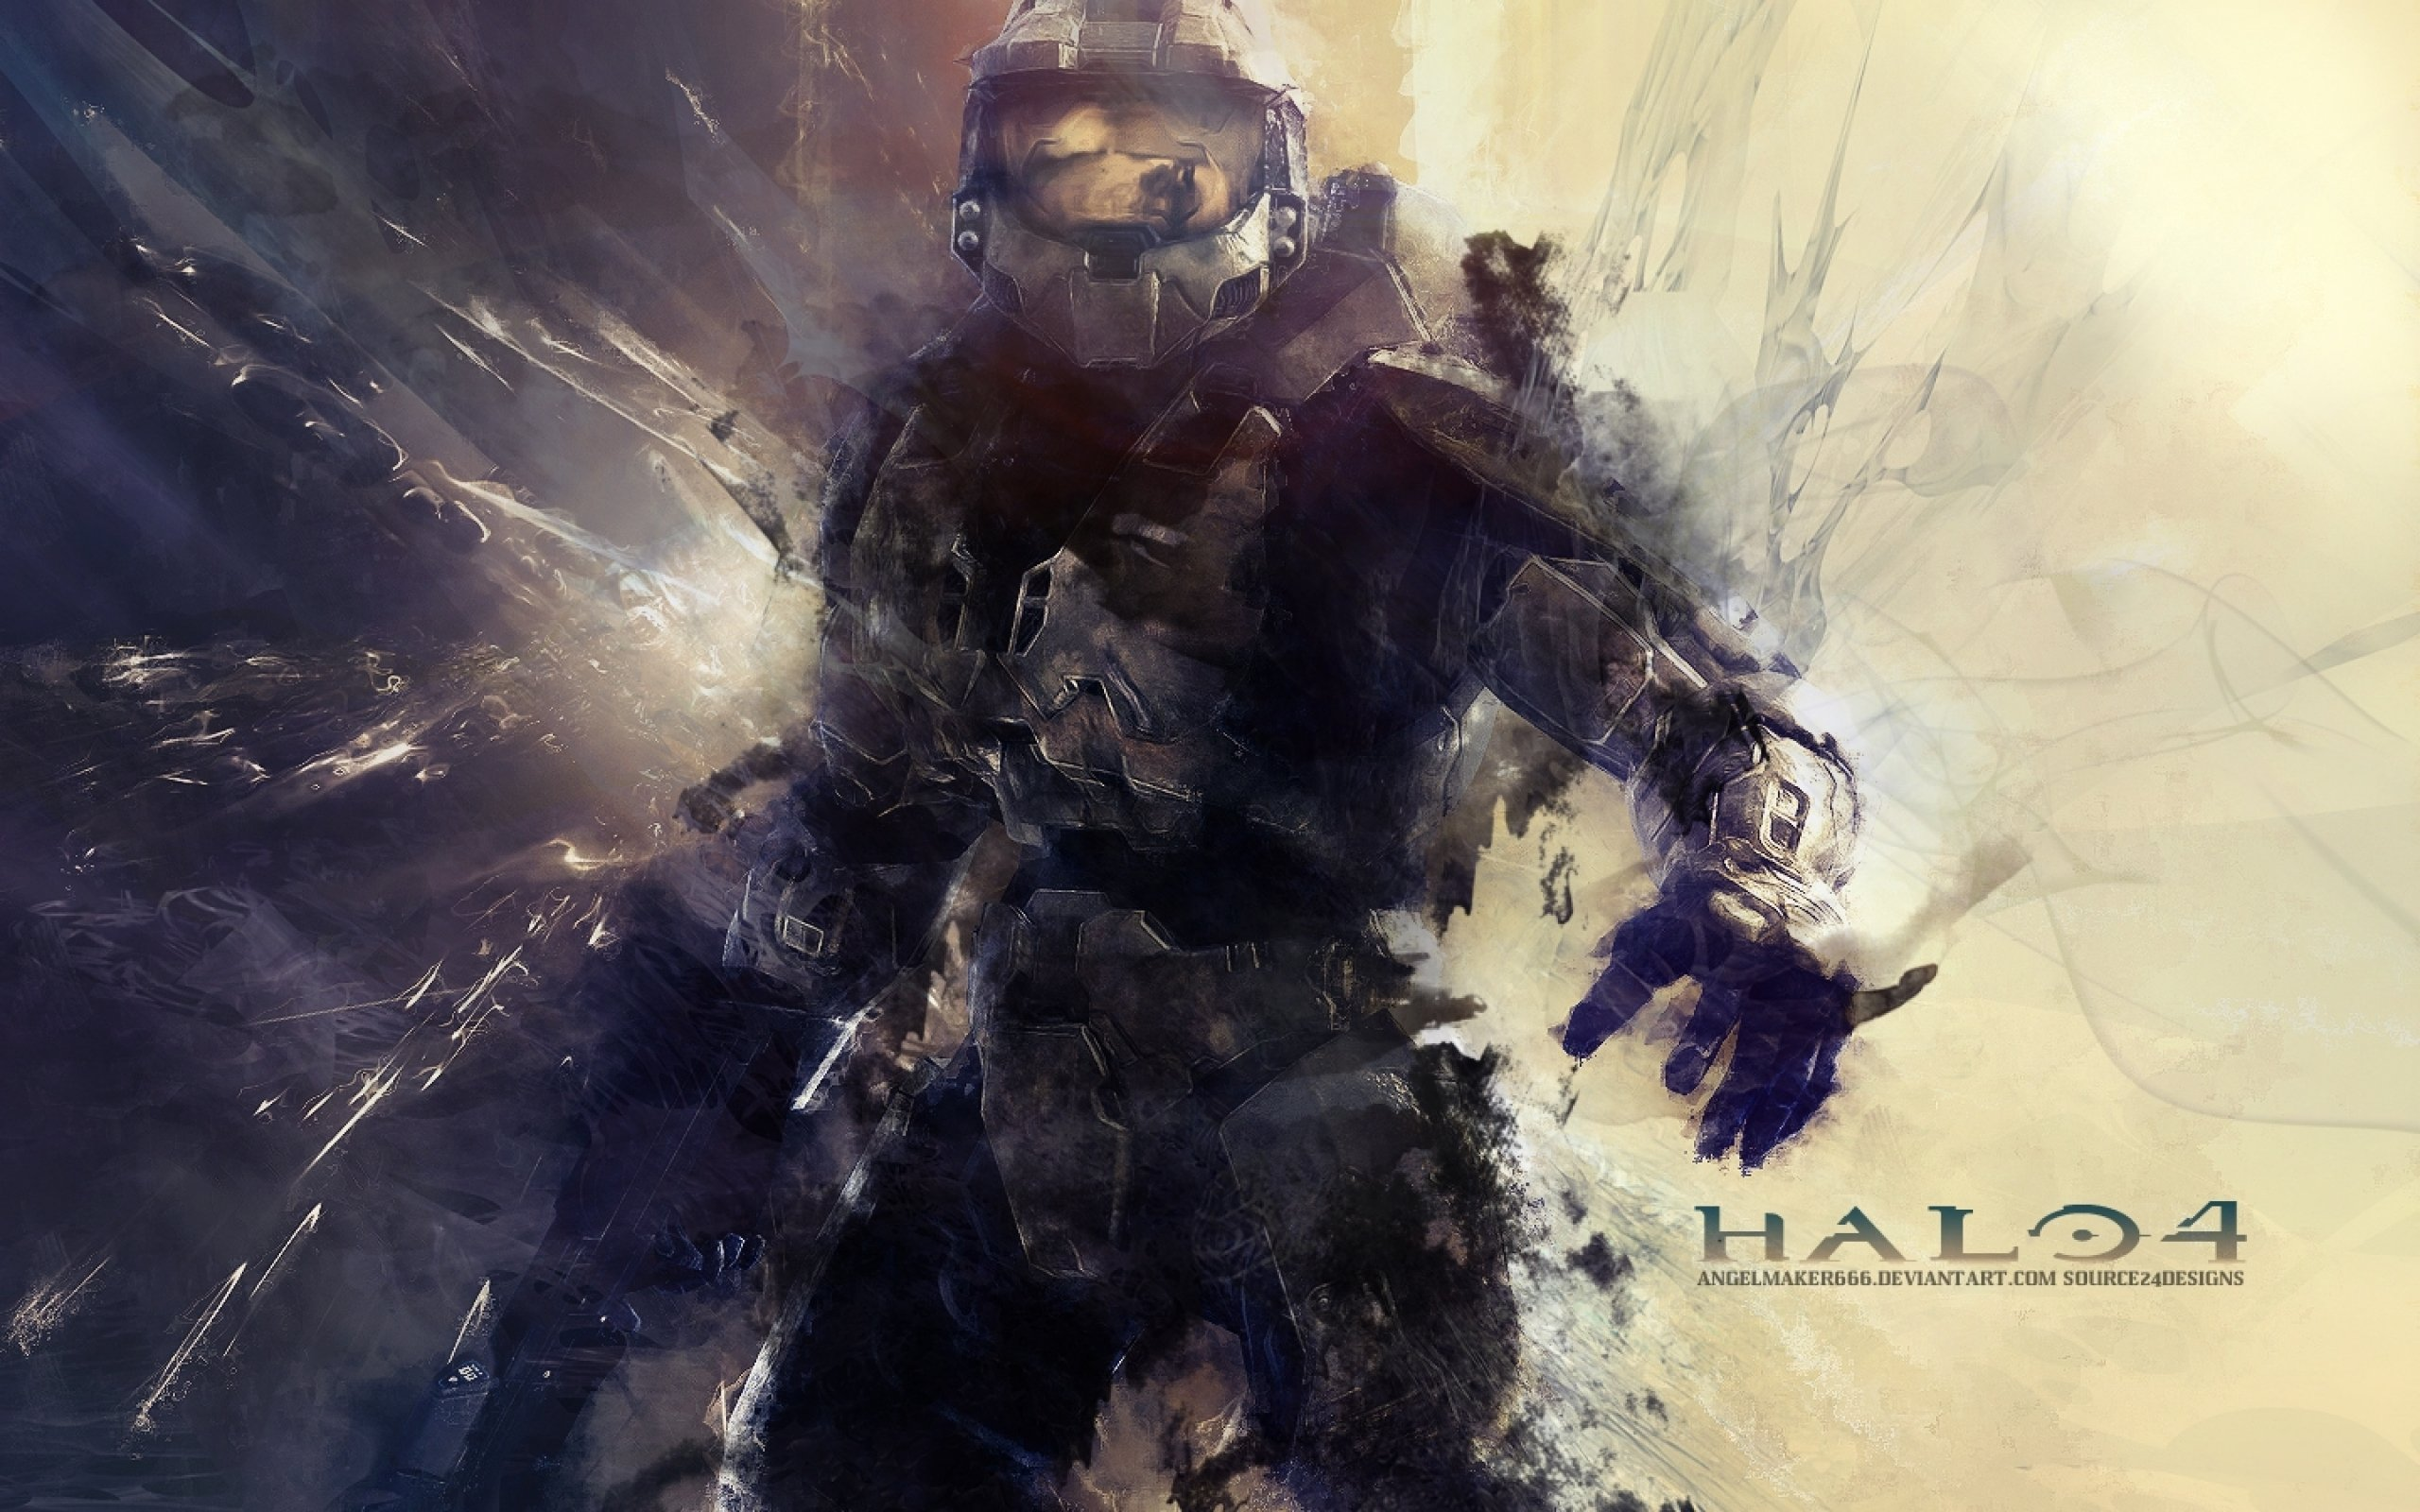 Download Halo 4 Backgrounds 2560x1600